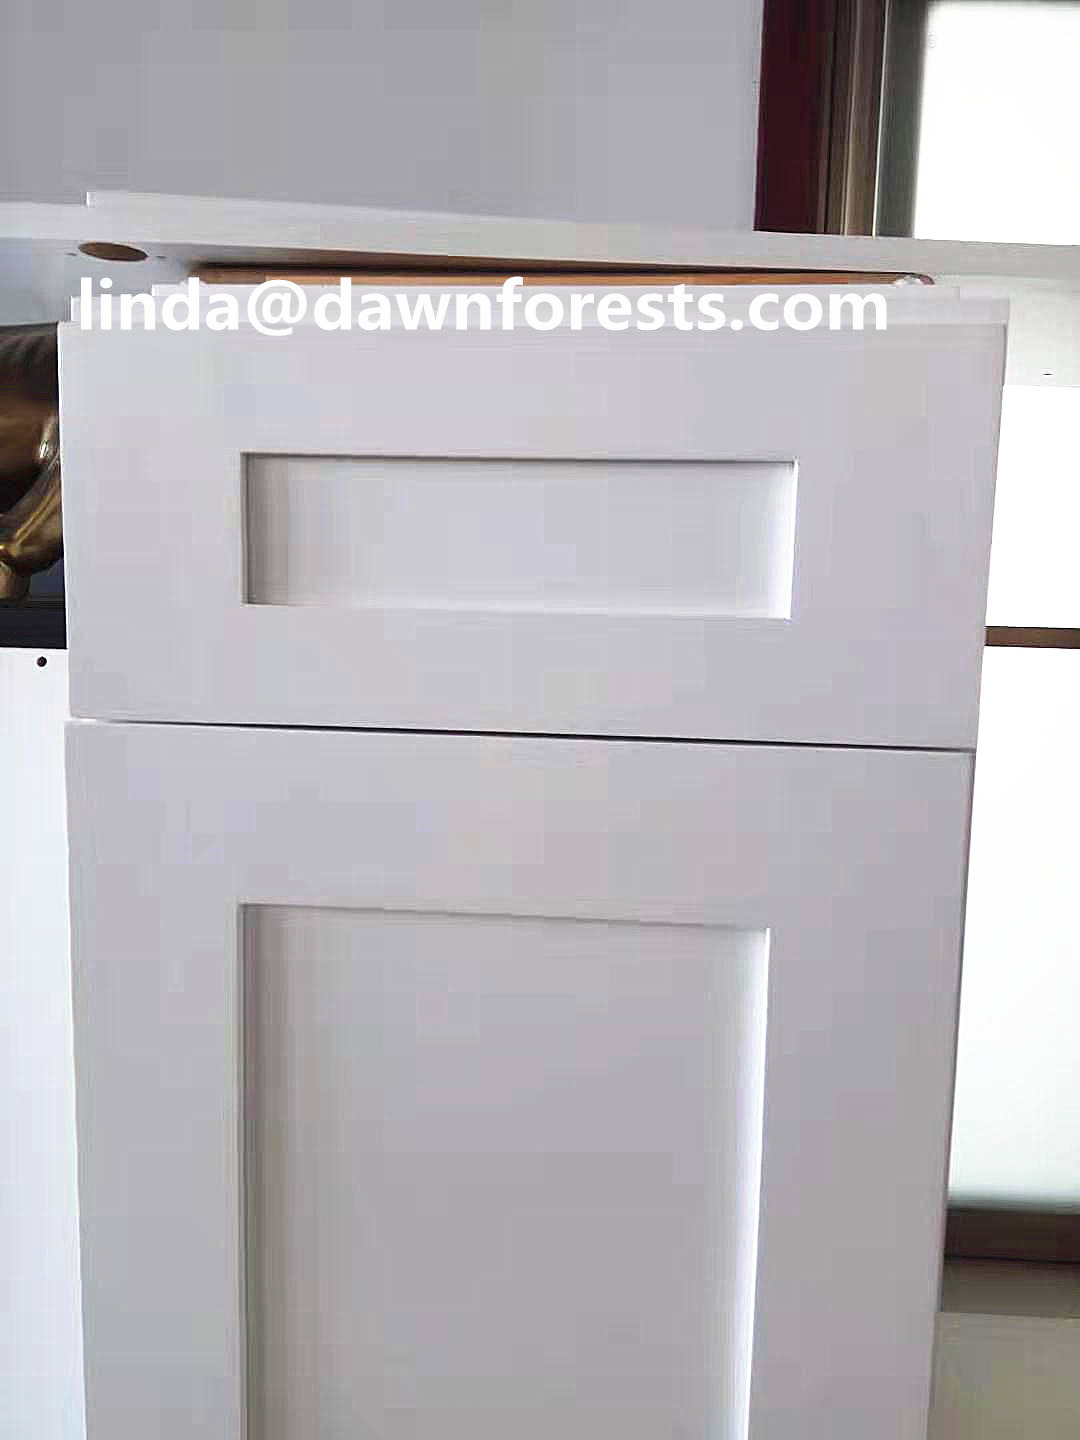 Printed Wood Shaker Kitchen Cabinet Used for European Furniture Door